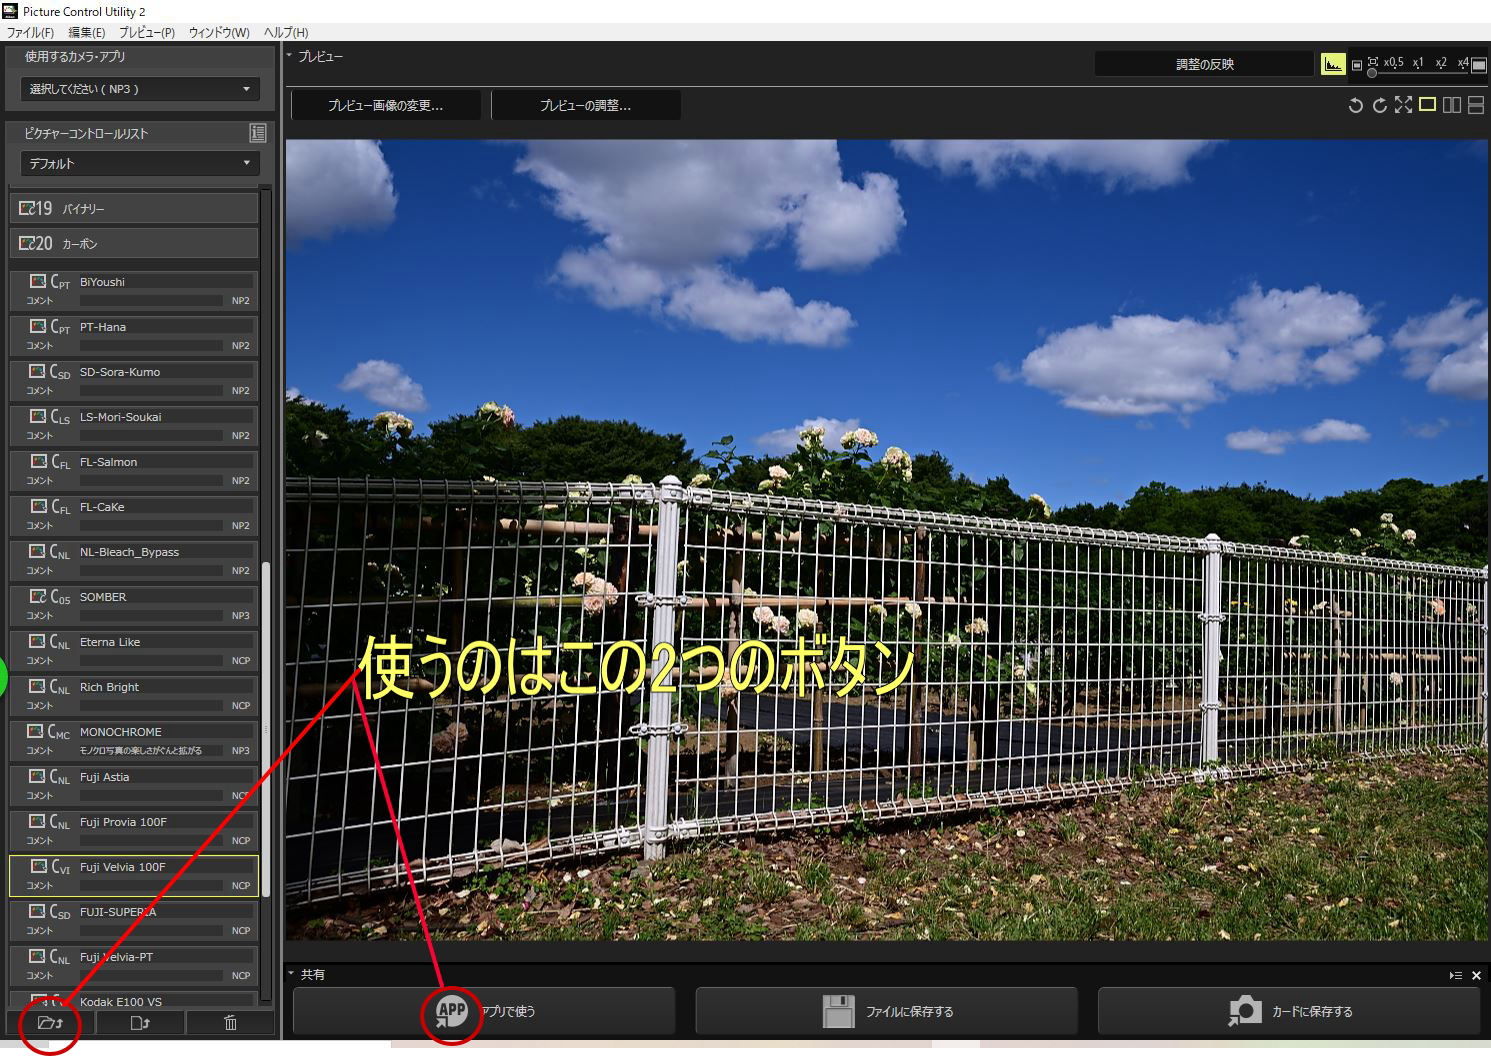 Picture Control Utility 2の使い方